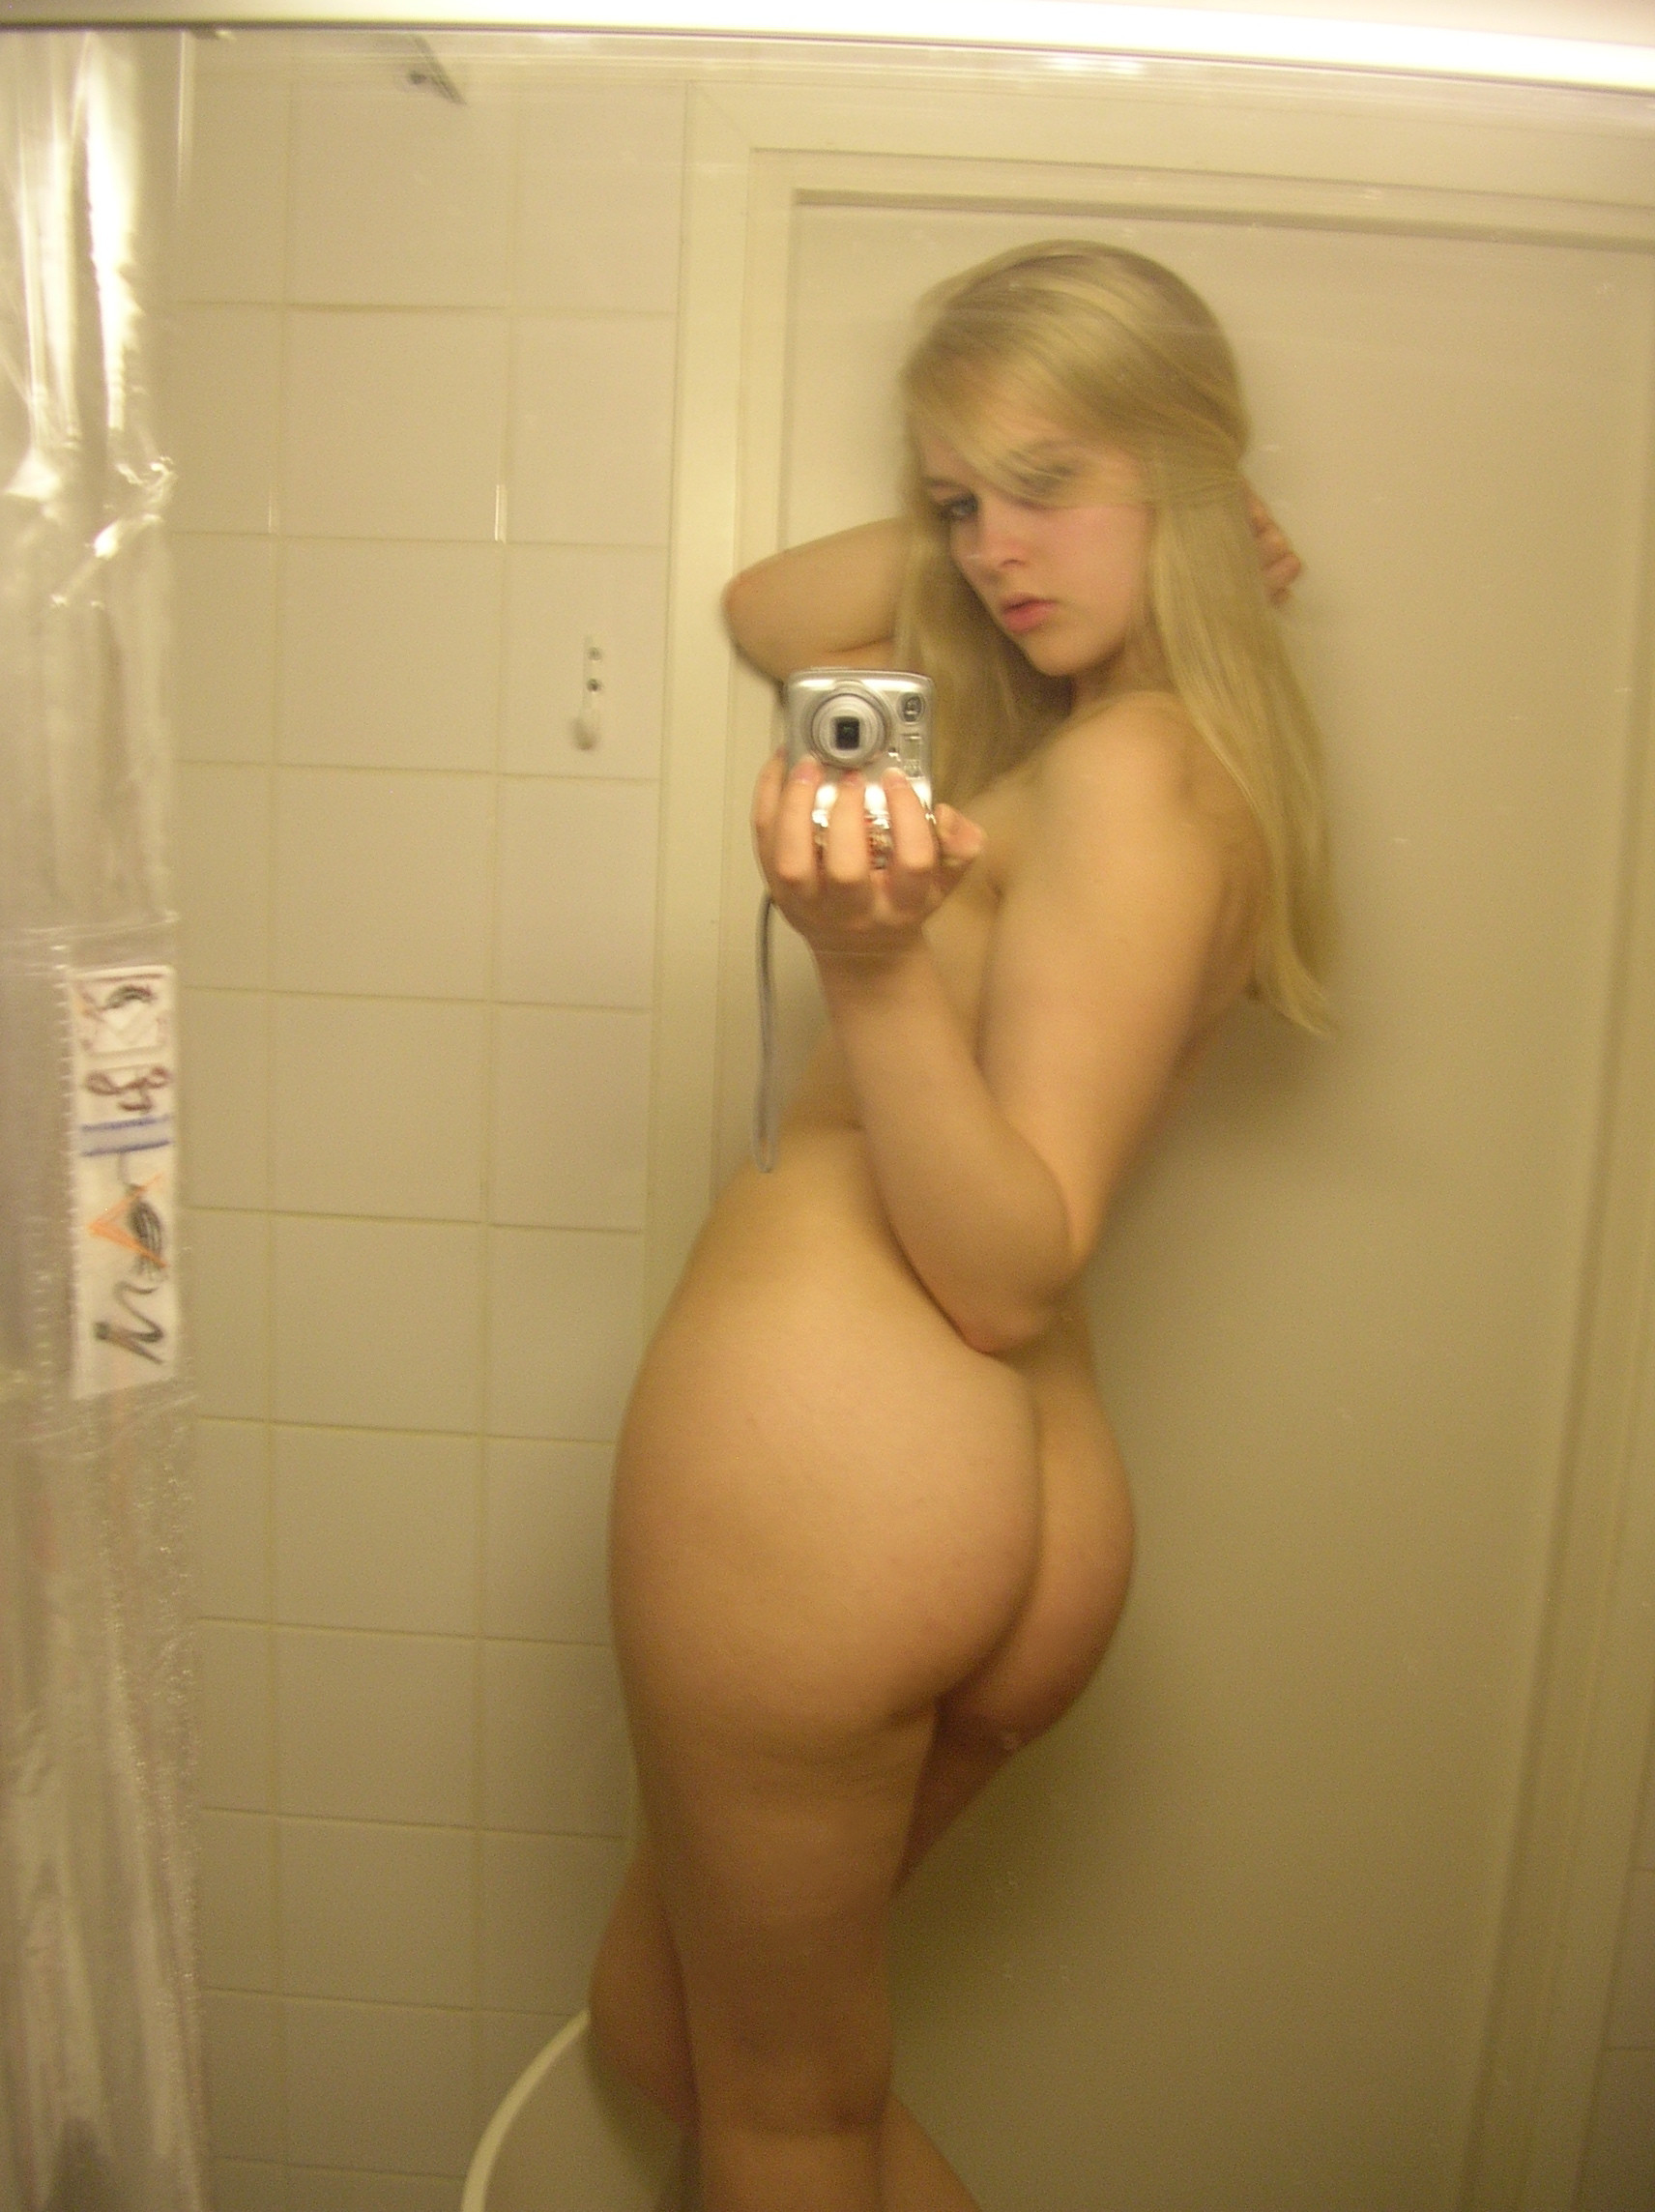 Blonde girl naked shower